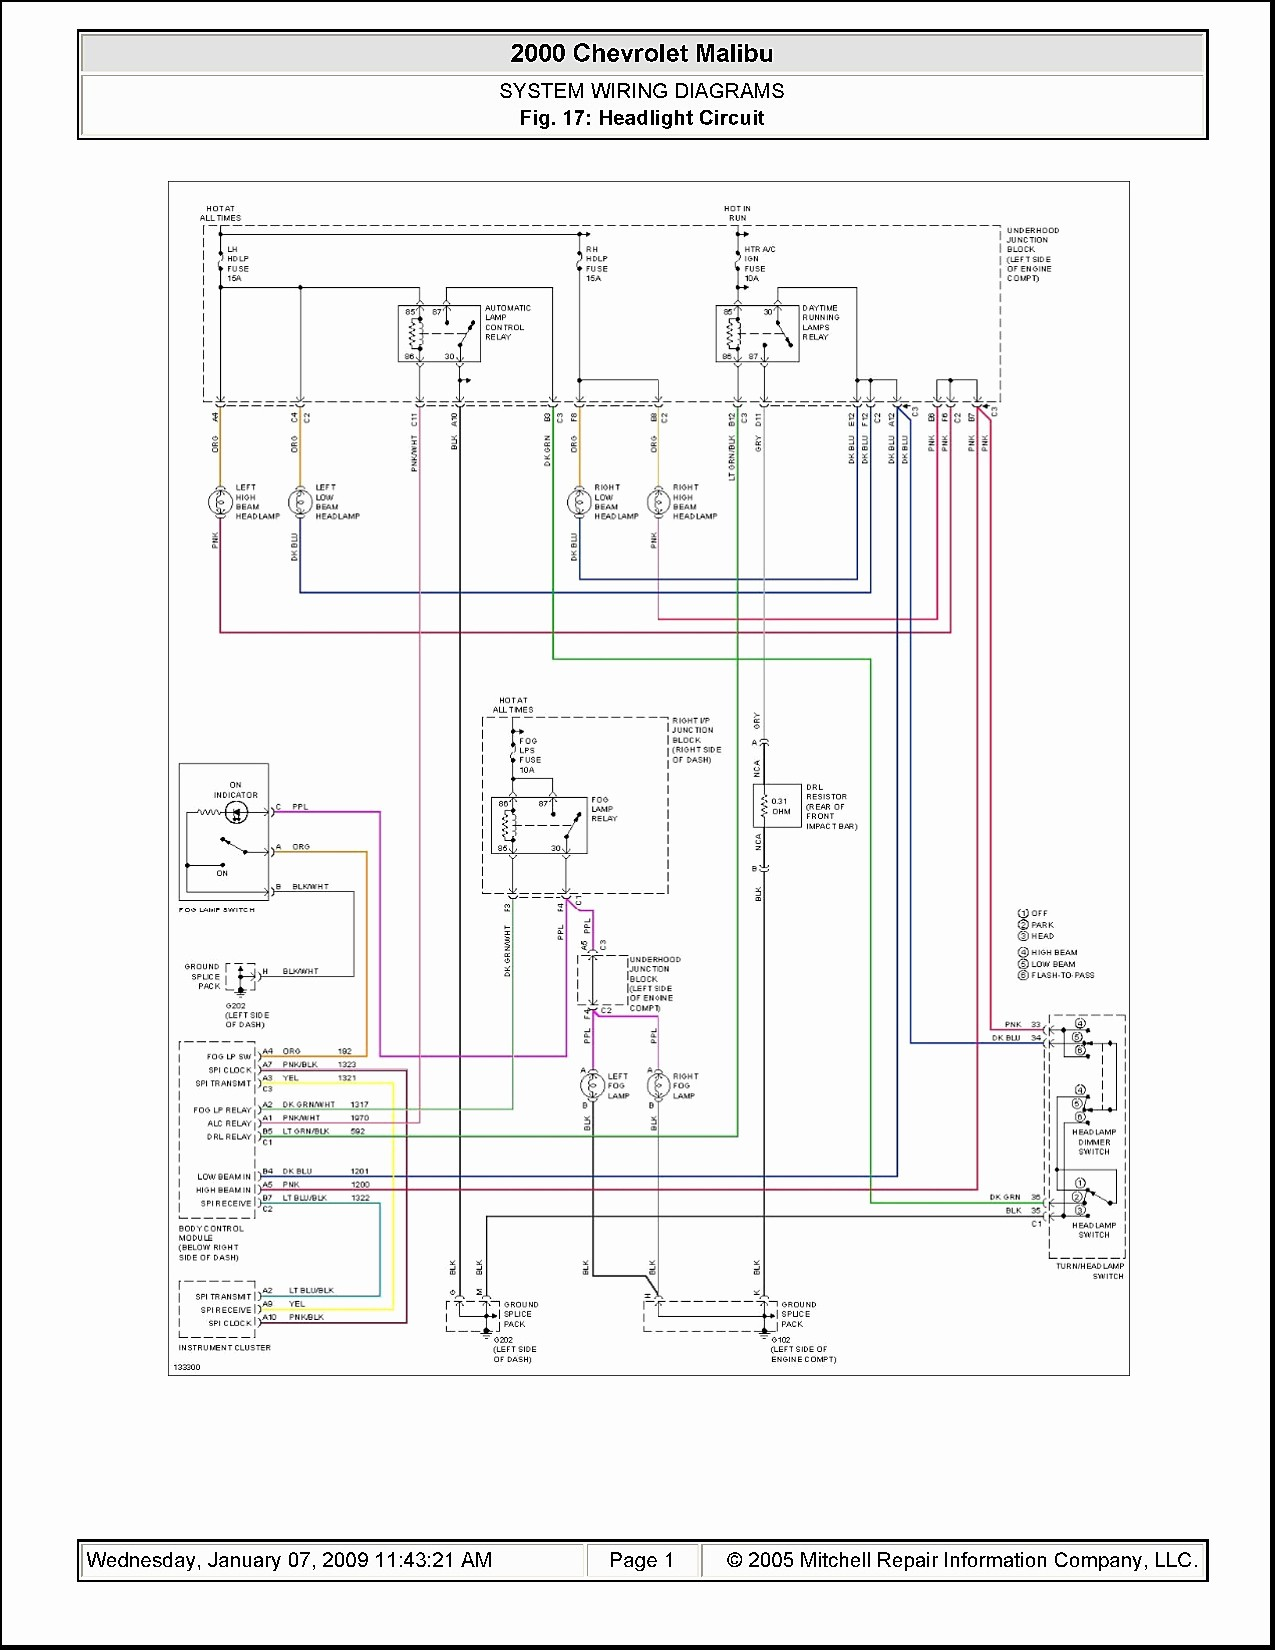 Santa Fe Engine Fuse Box Wiring Library 03 Hyundai Elantra Free Diagrams 2003 Electrical Work 2006 Sonata Diagram